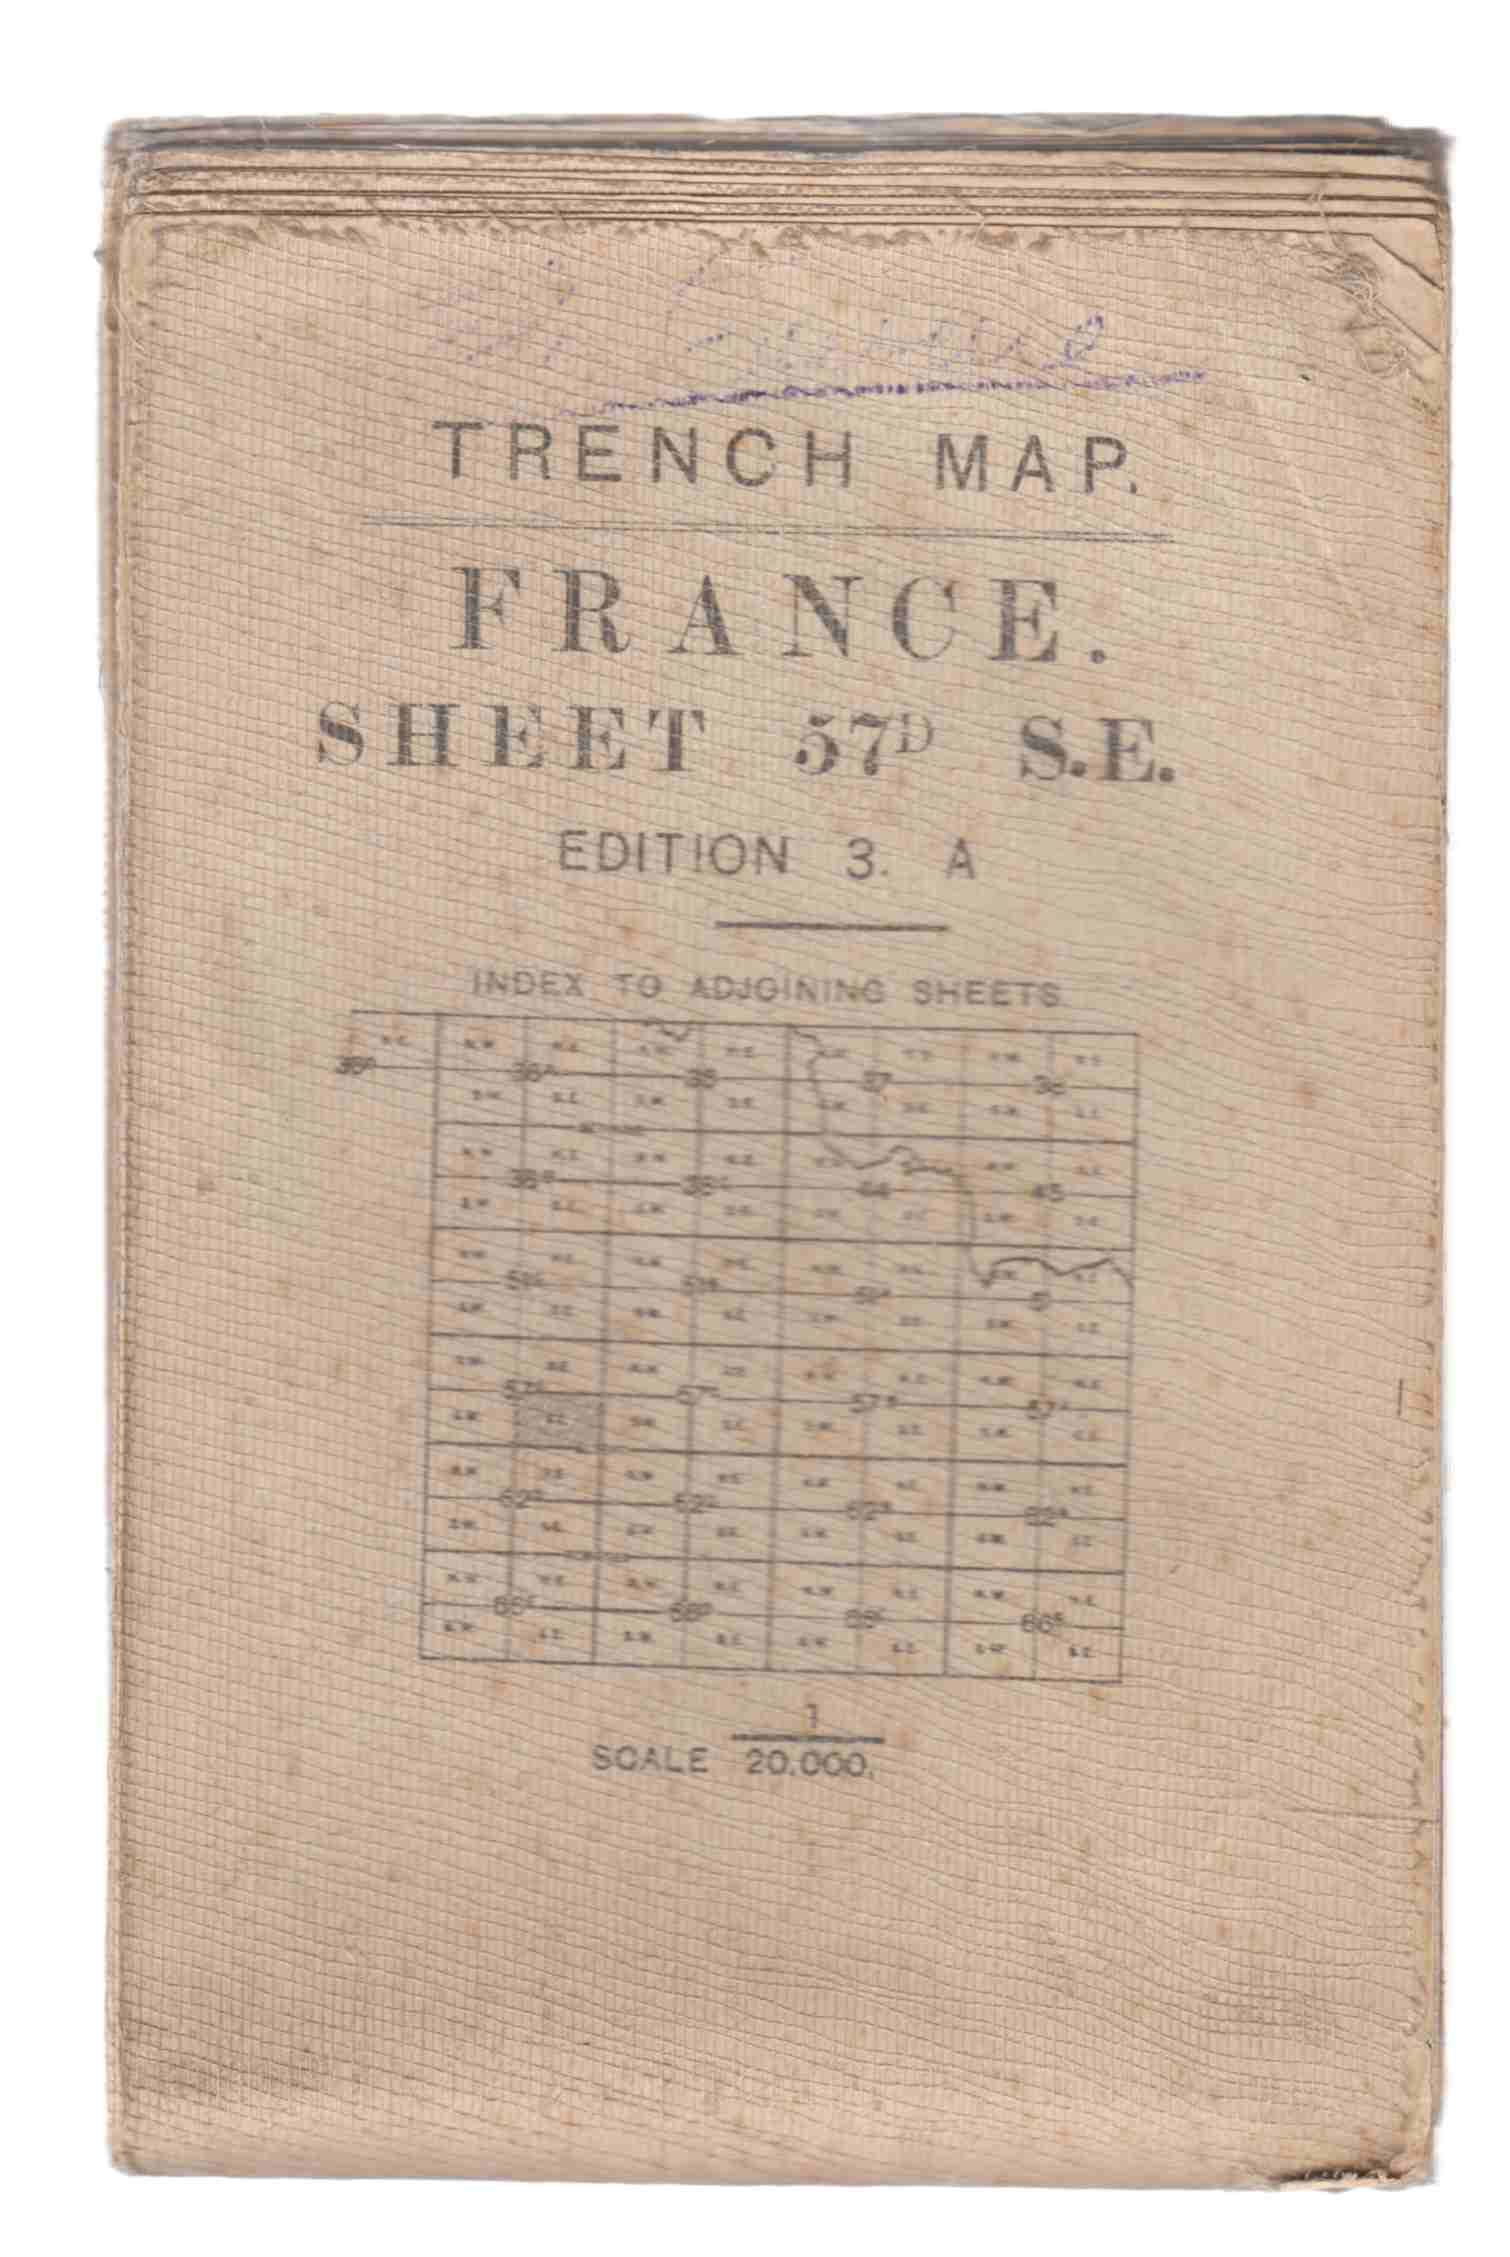 Image for Trench Map Frence Sheet 57D S. E. Edition 3